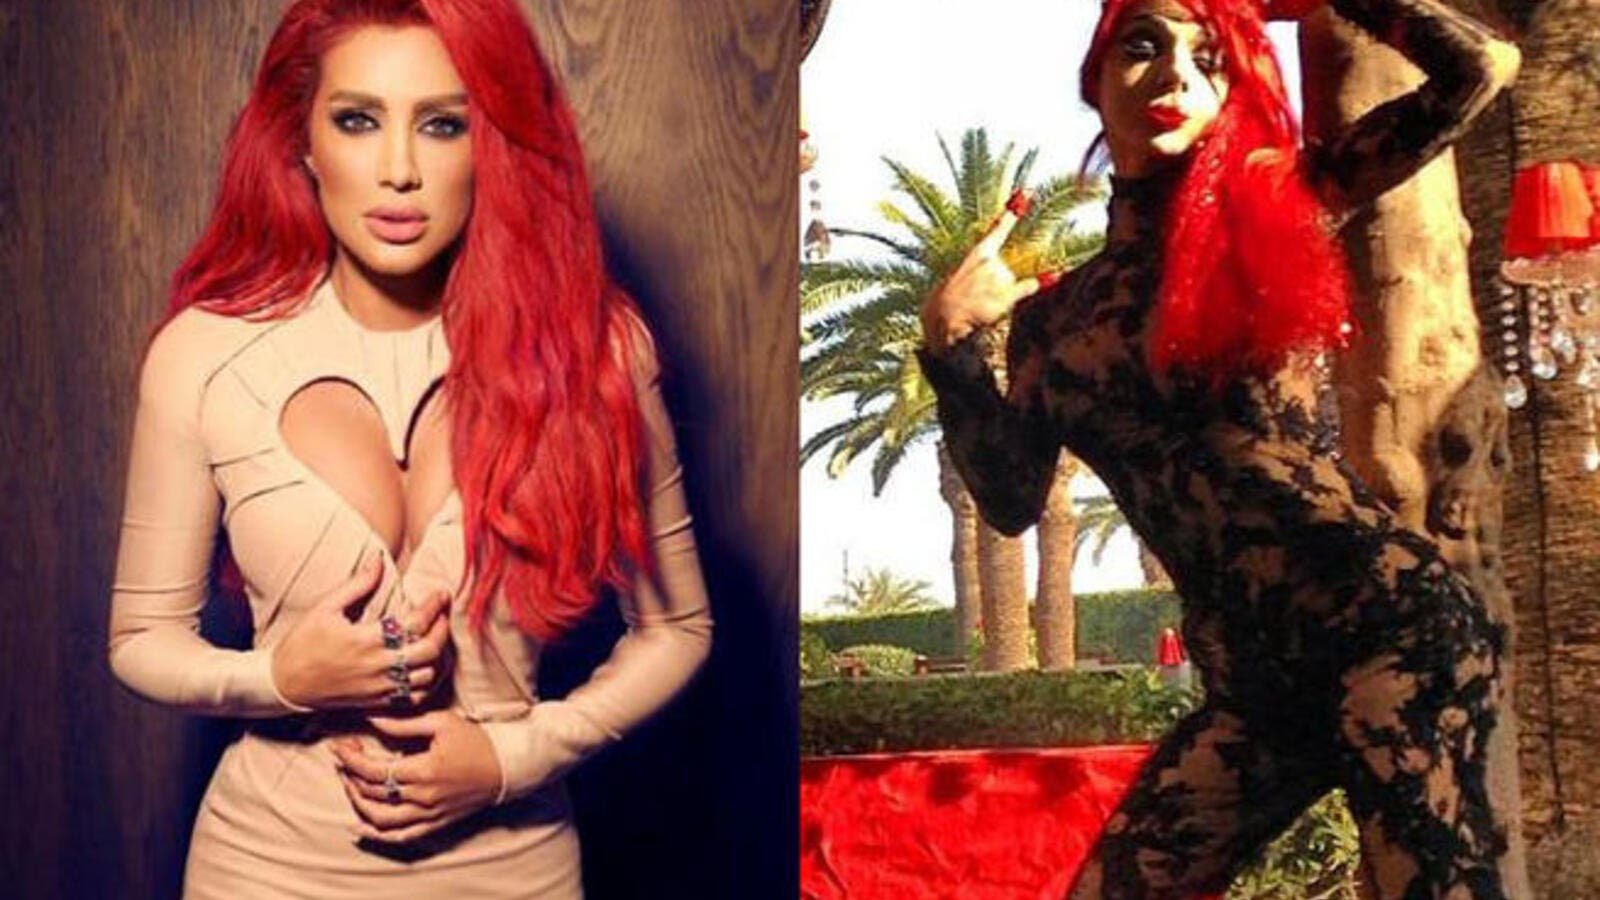 In the clear: Maya Diab won't be suing celeb impersonator Bassem